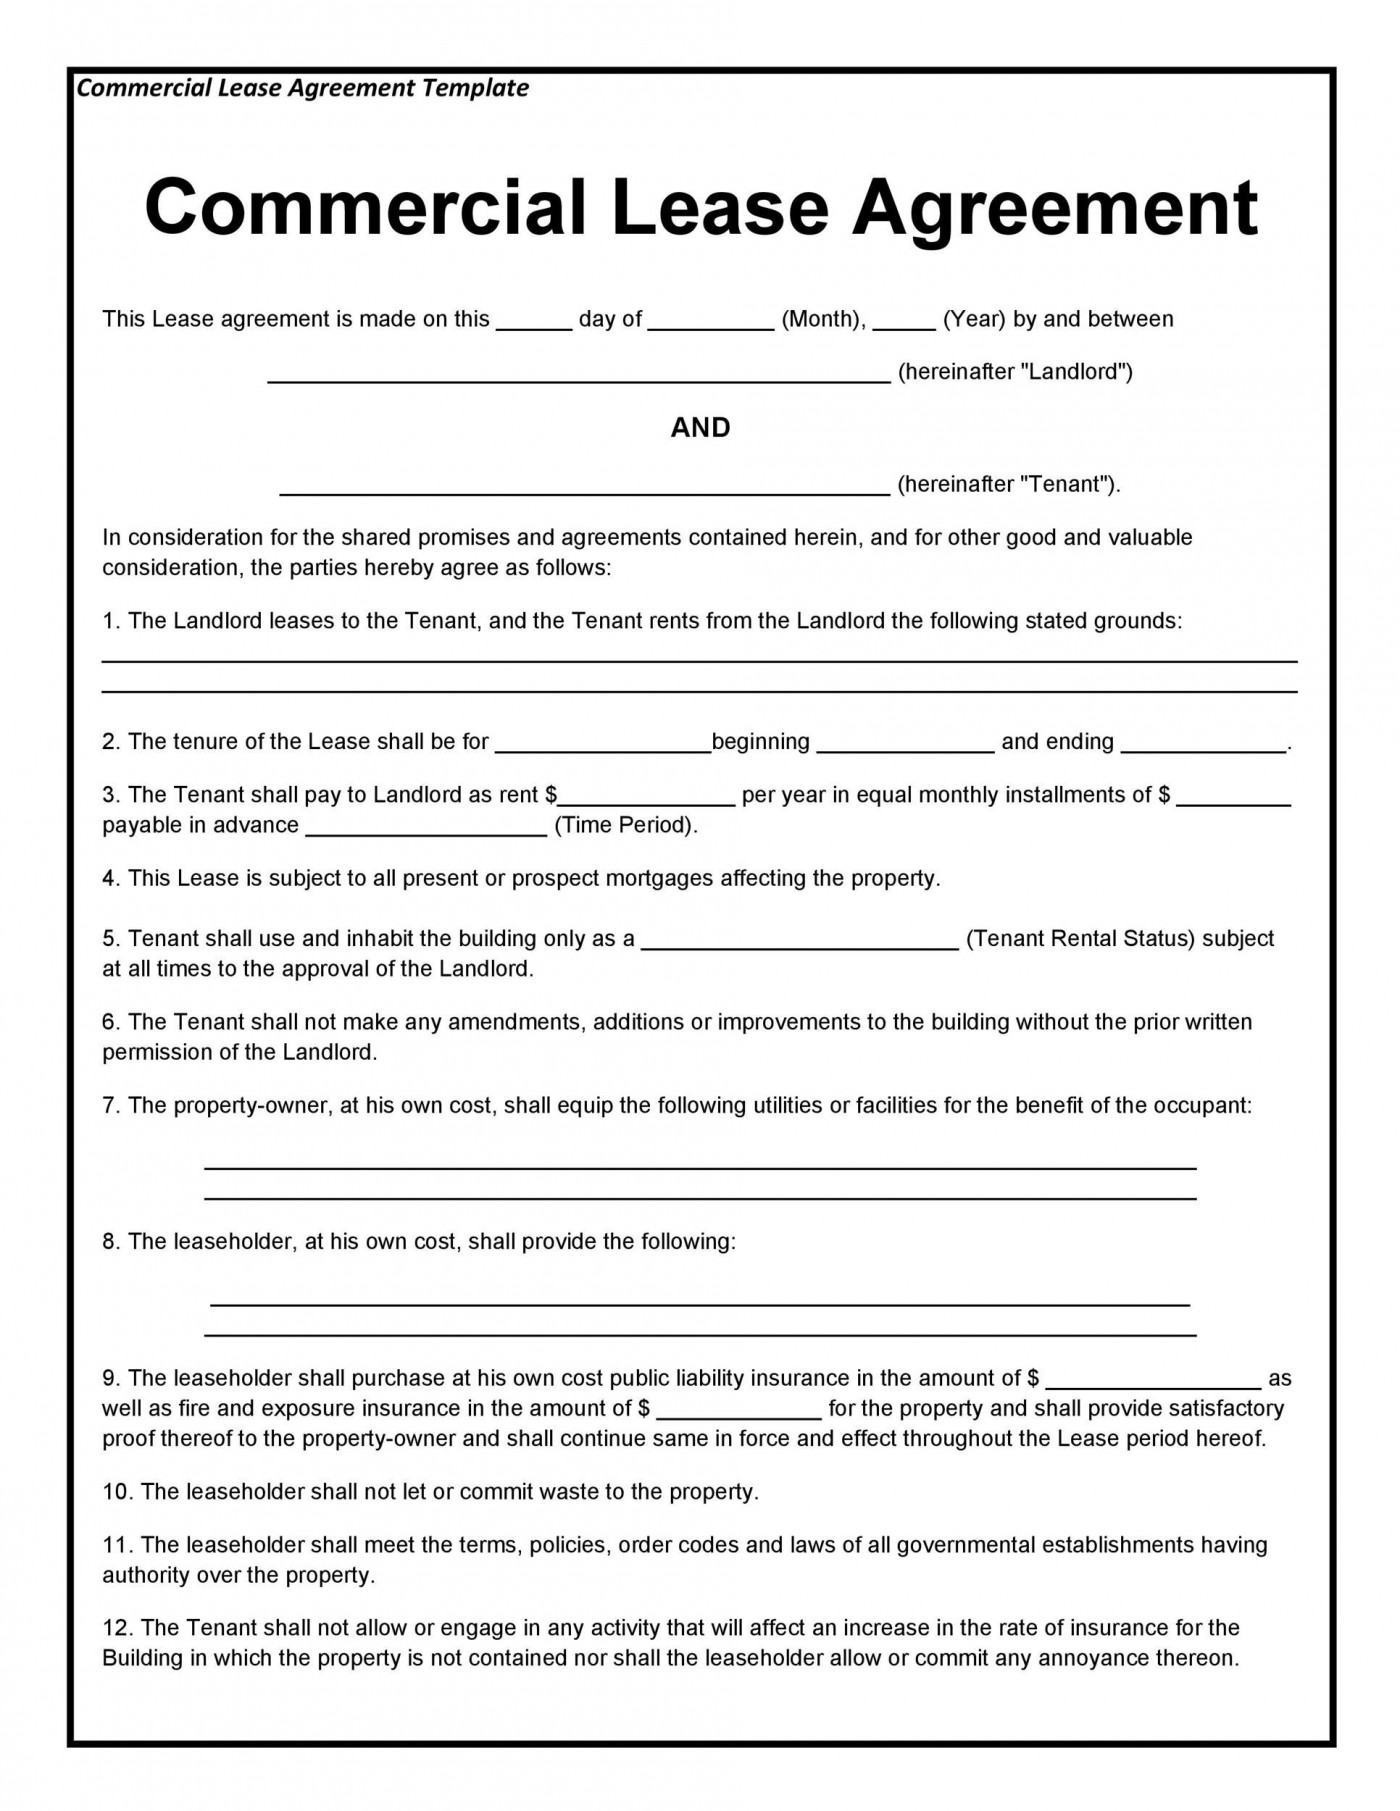 002 Shocking Free Lease Agreement Template Word Picture  Commercial Residential Rental South Africa1400